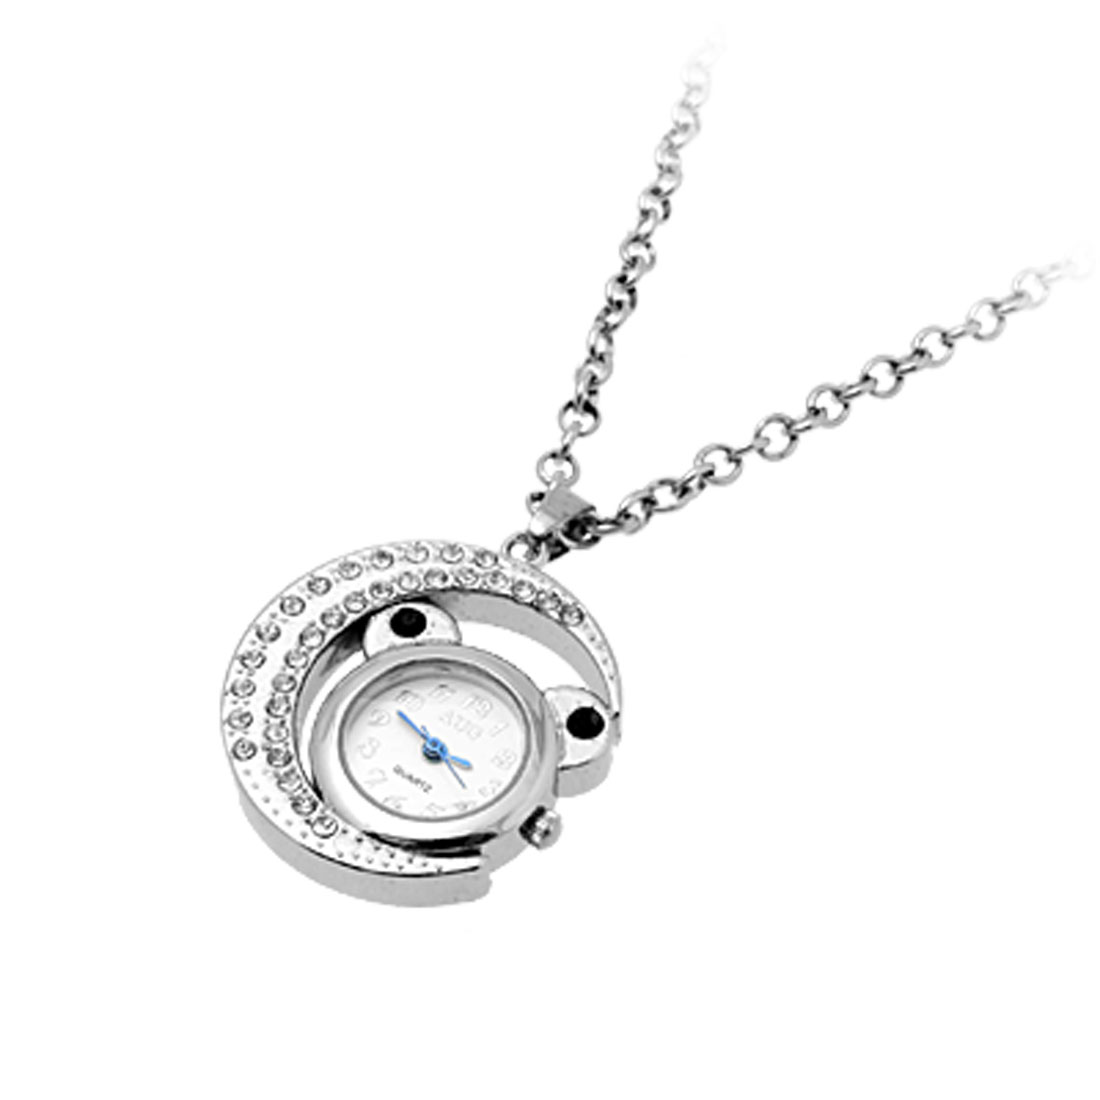 Simulated Crystal Fairy Cat Moon Pendant Necklace with Quartz Watch